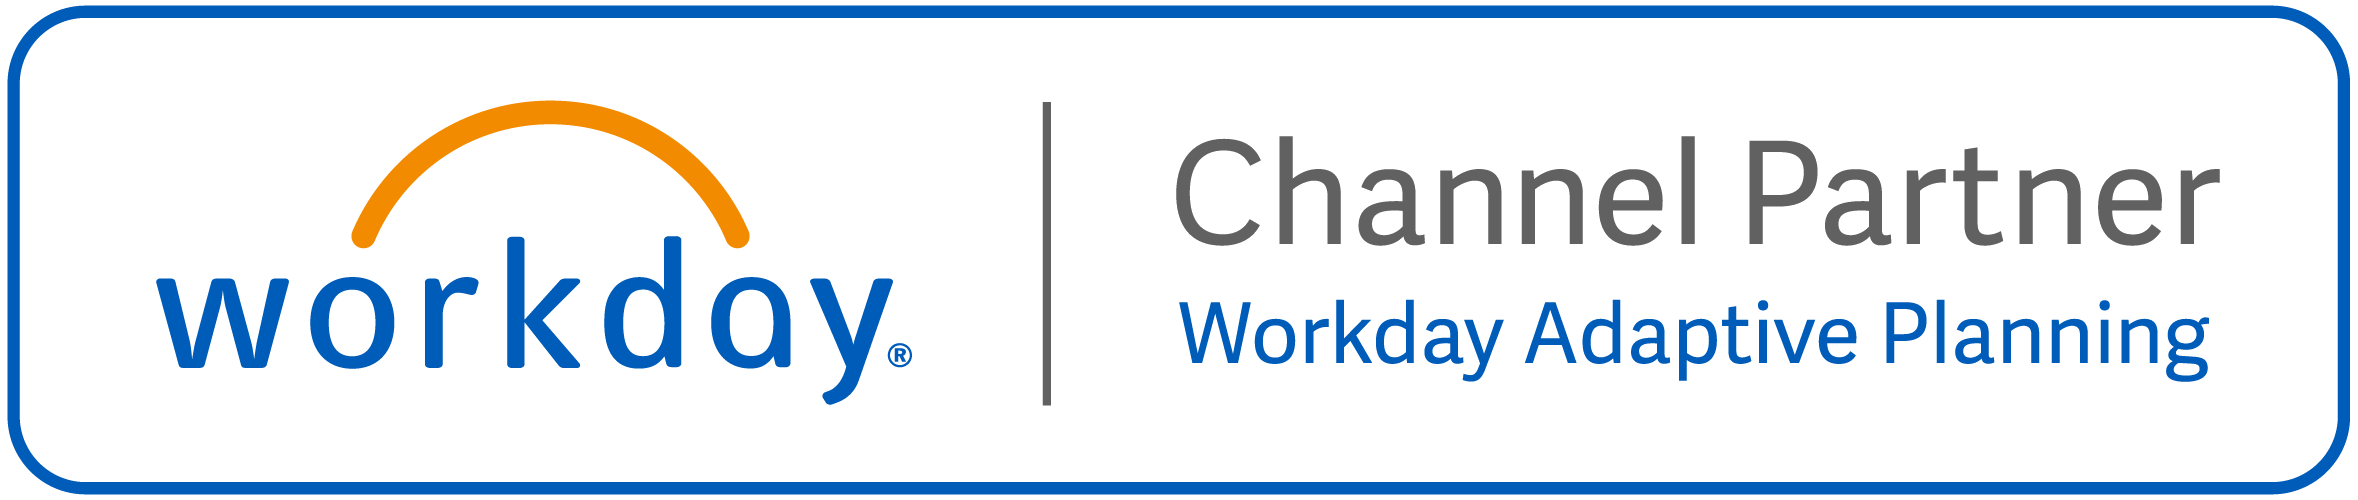 wday-channel-partners-logo-channel-partner (transparent)